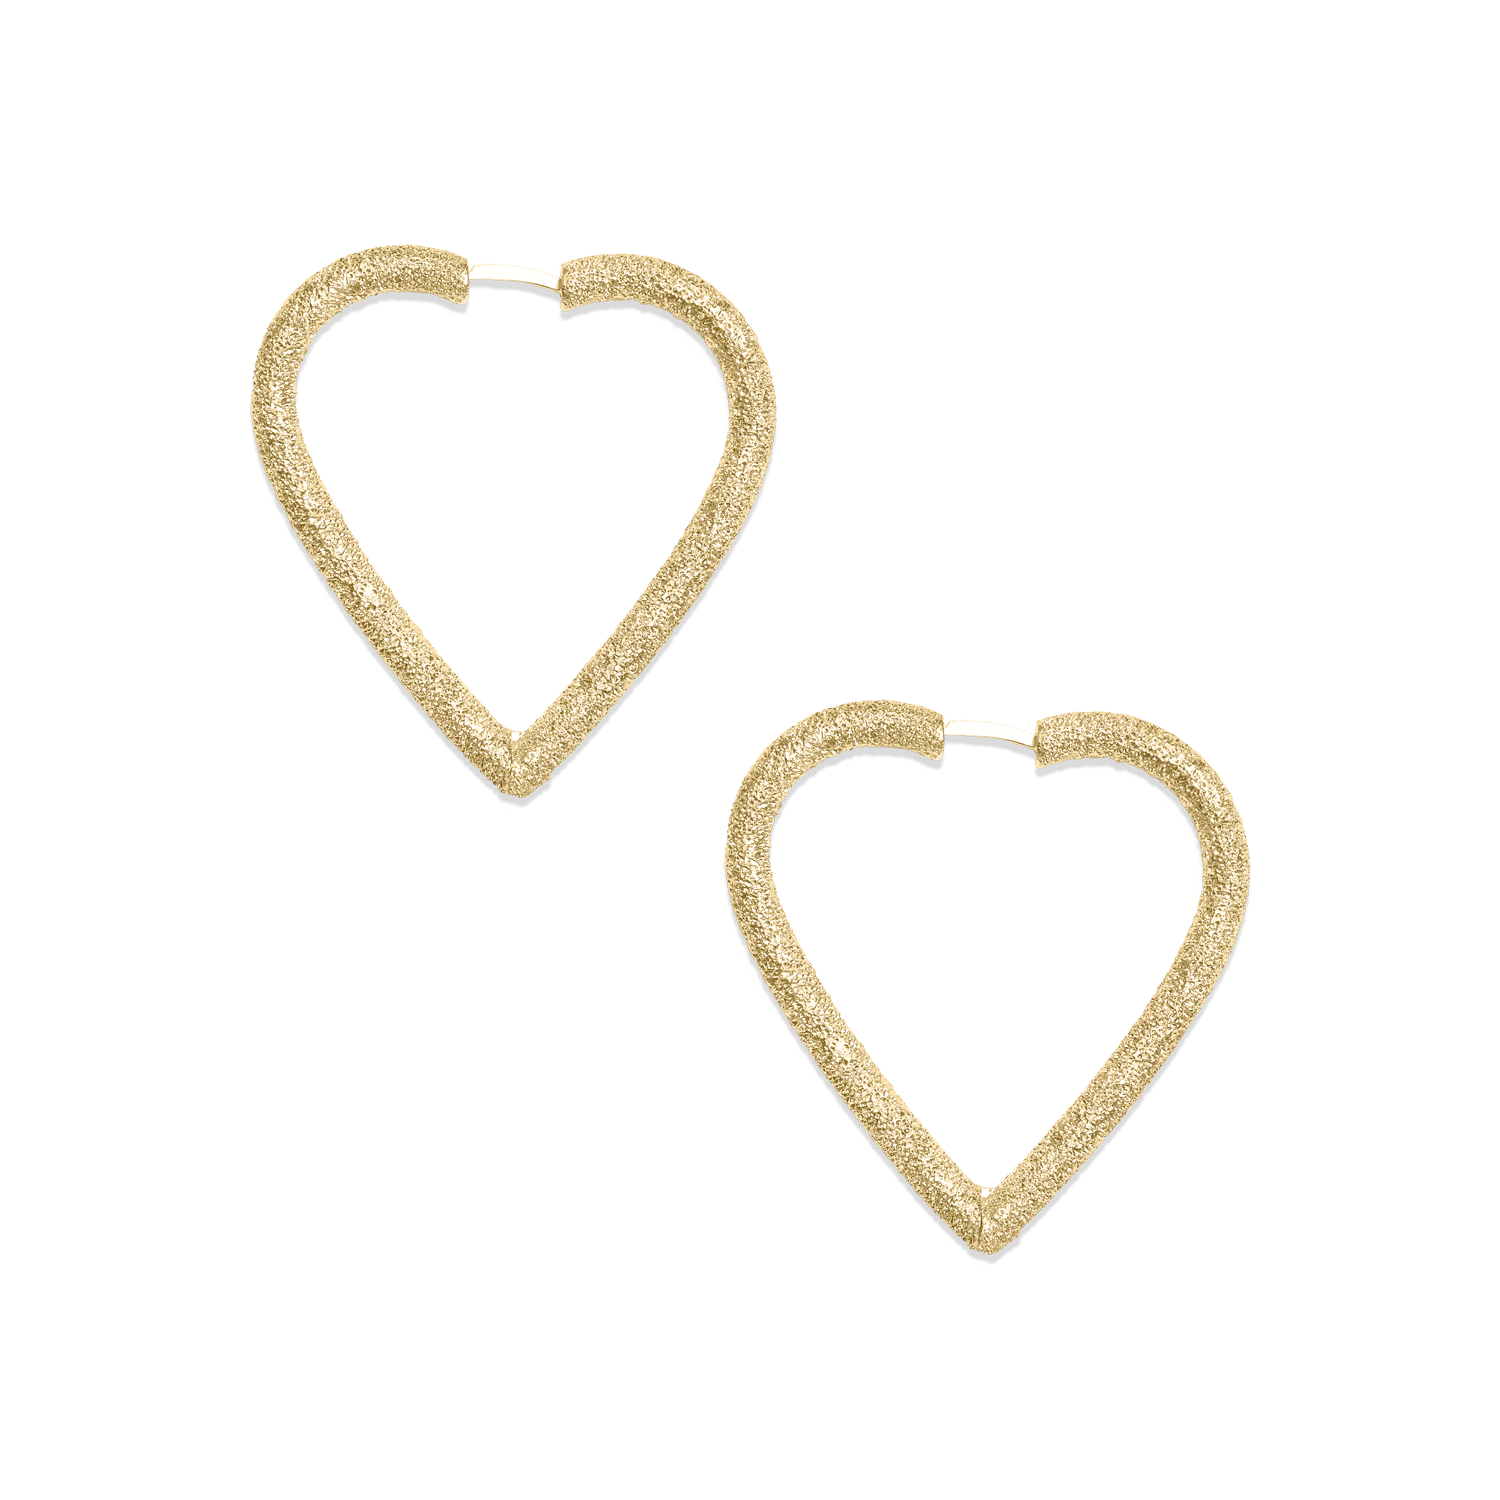 Large heart shape hoop earrings in yellow gold